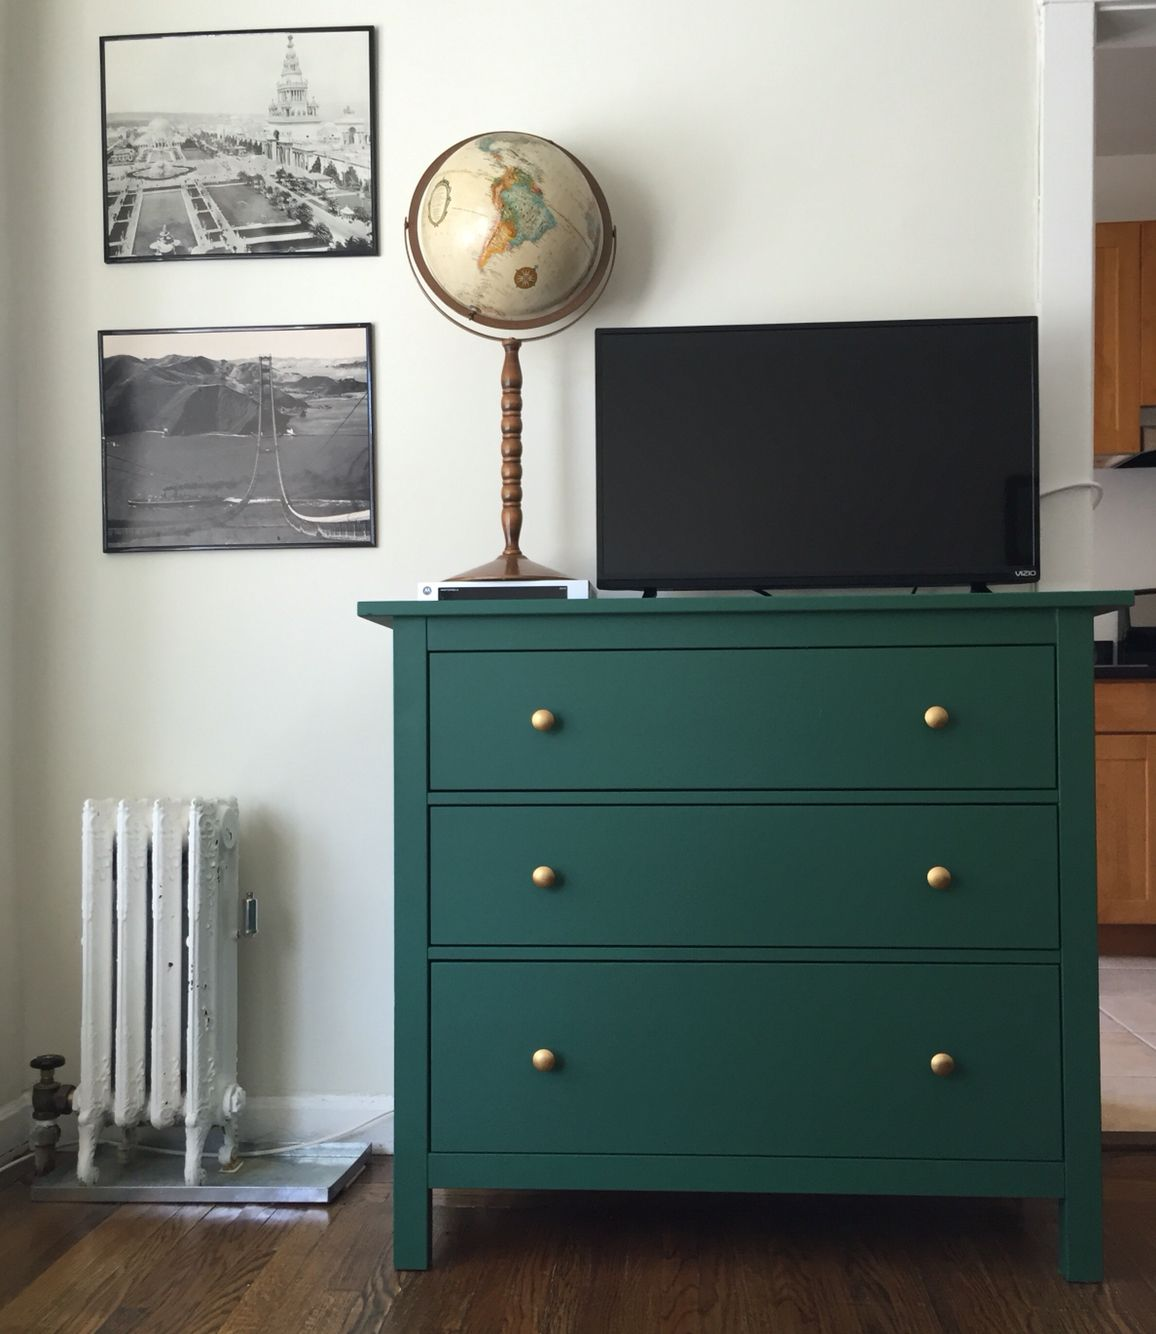 ikea hemnes dresser hack chalkboard green home pinterest kommode m bel und hemnes. Black Bedroom Furniture Sets. Home Design Ideas